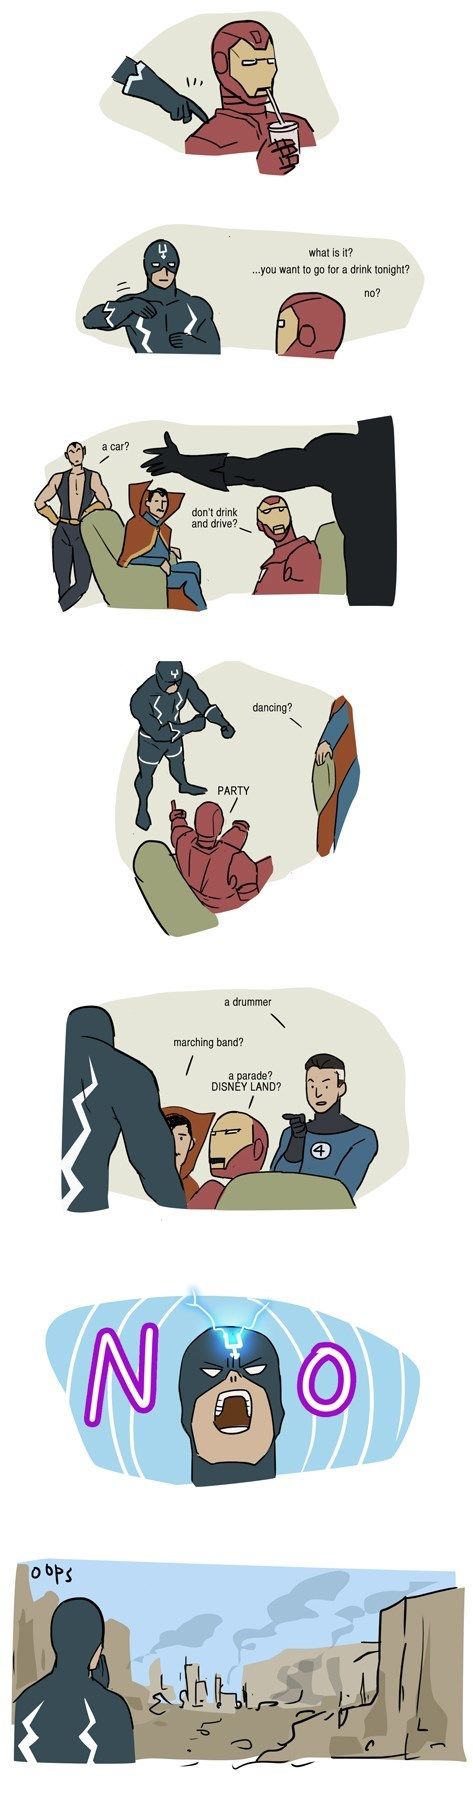 superheroes-inhumans-marvel-black-bolt-is-trying-to-tell-you-something